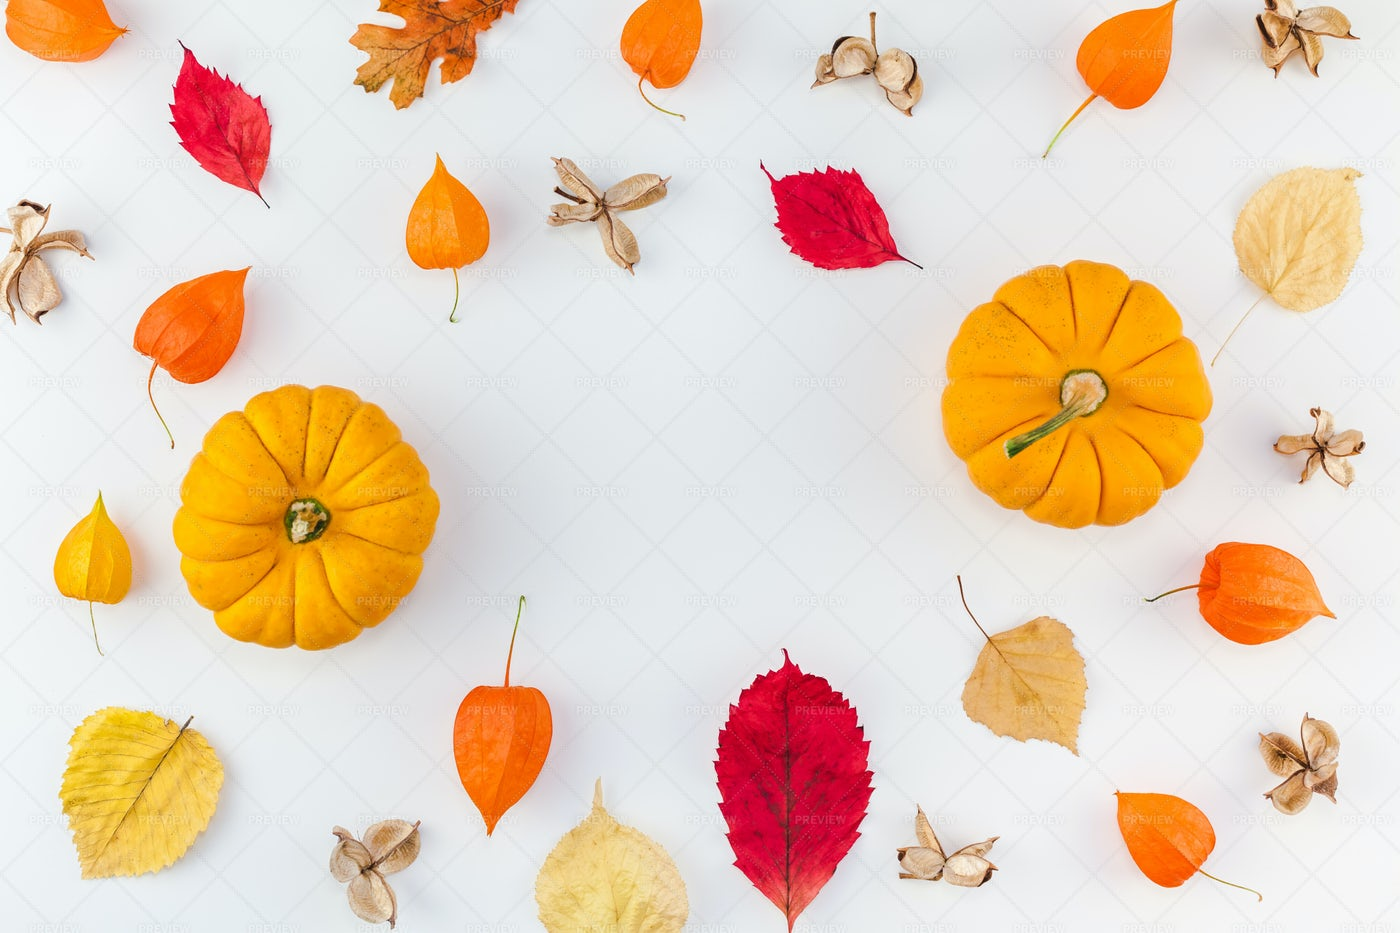 Pumpkins And Leaves: Stock Photos